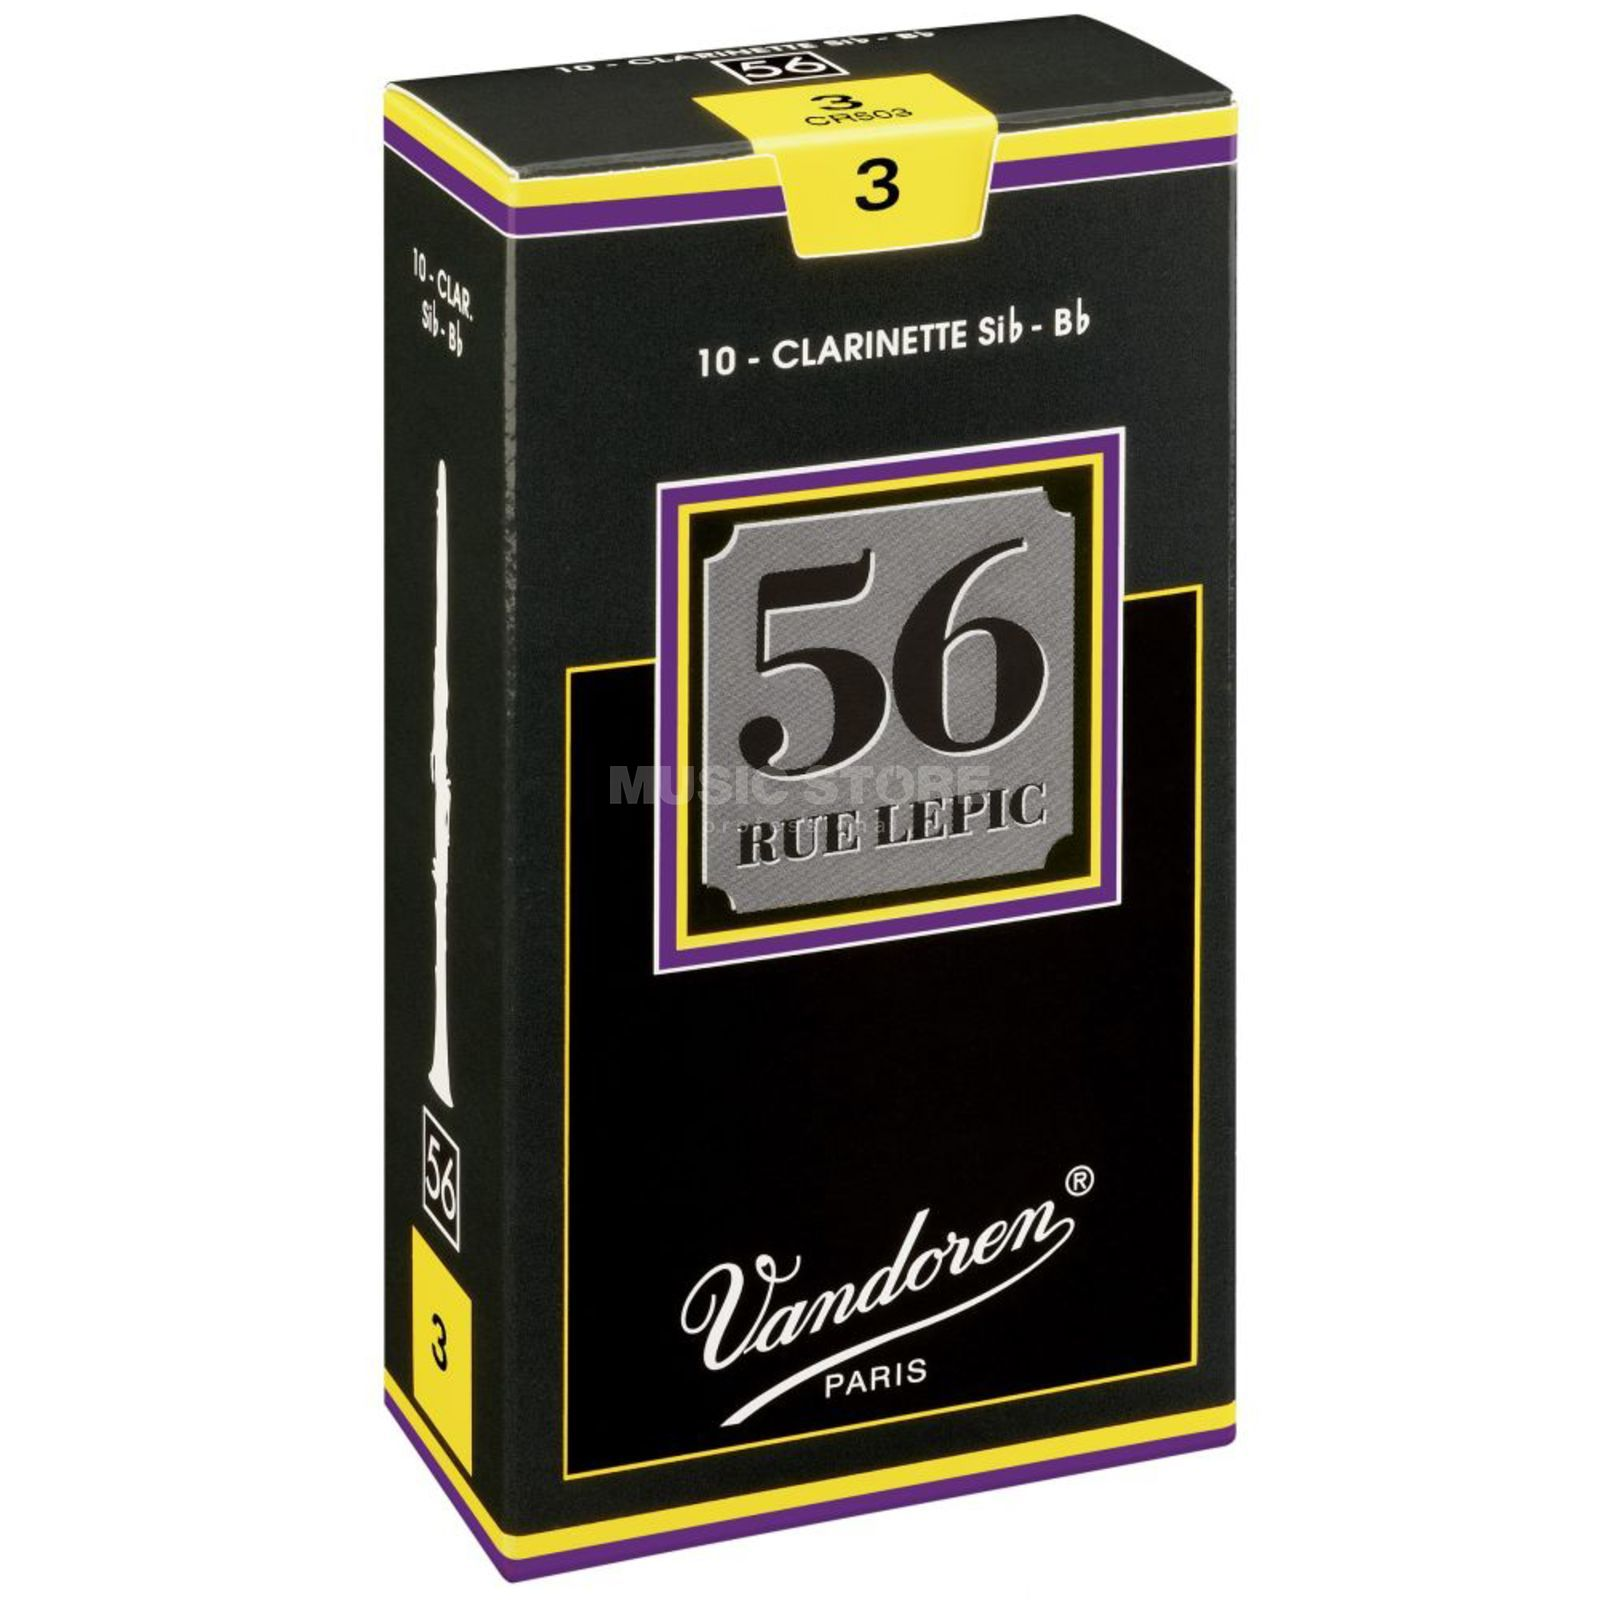 Vandoren 56 Rue Lepic Bb-Clarinet 2.5 Box of 10 Zdjęcie produktu